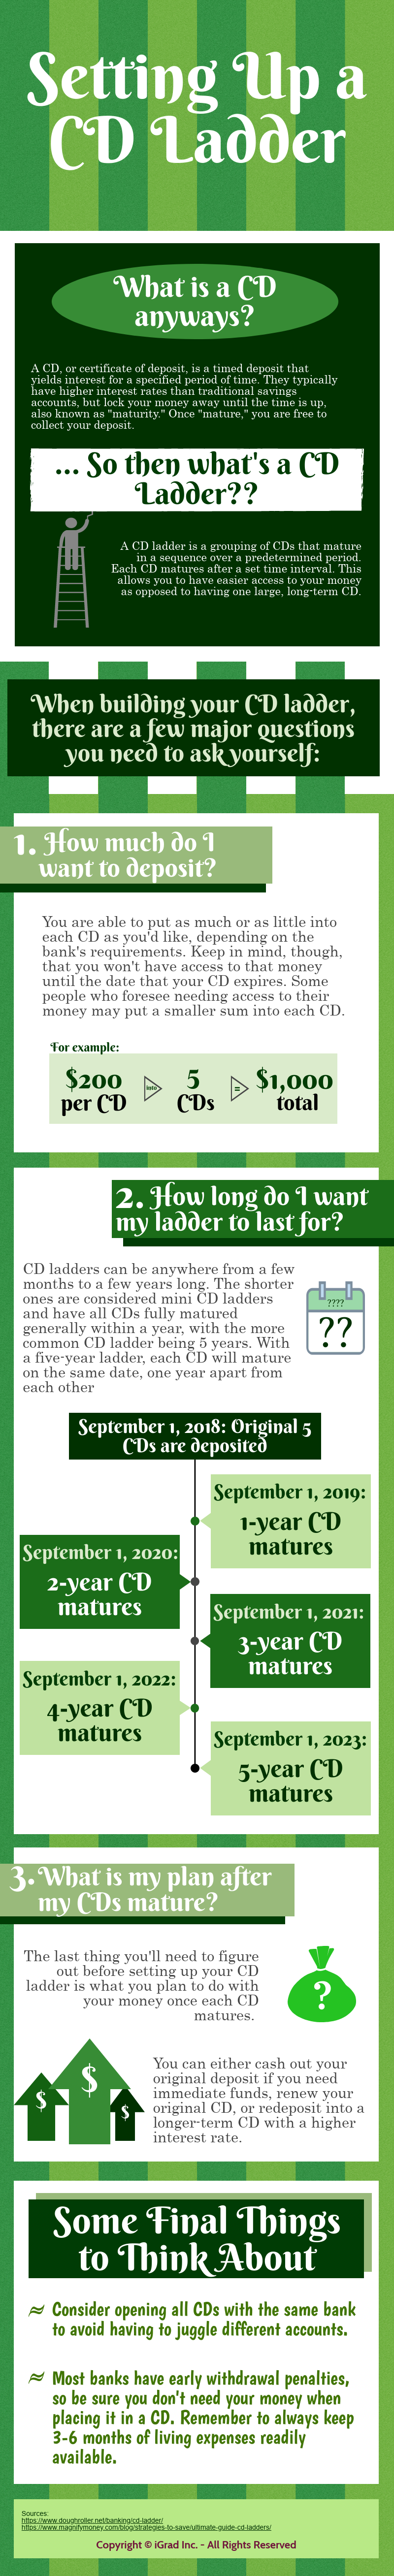 How To Create A Cd Ladder Infographic